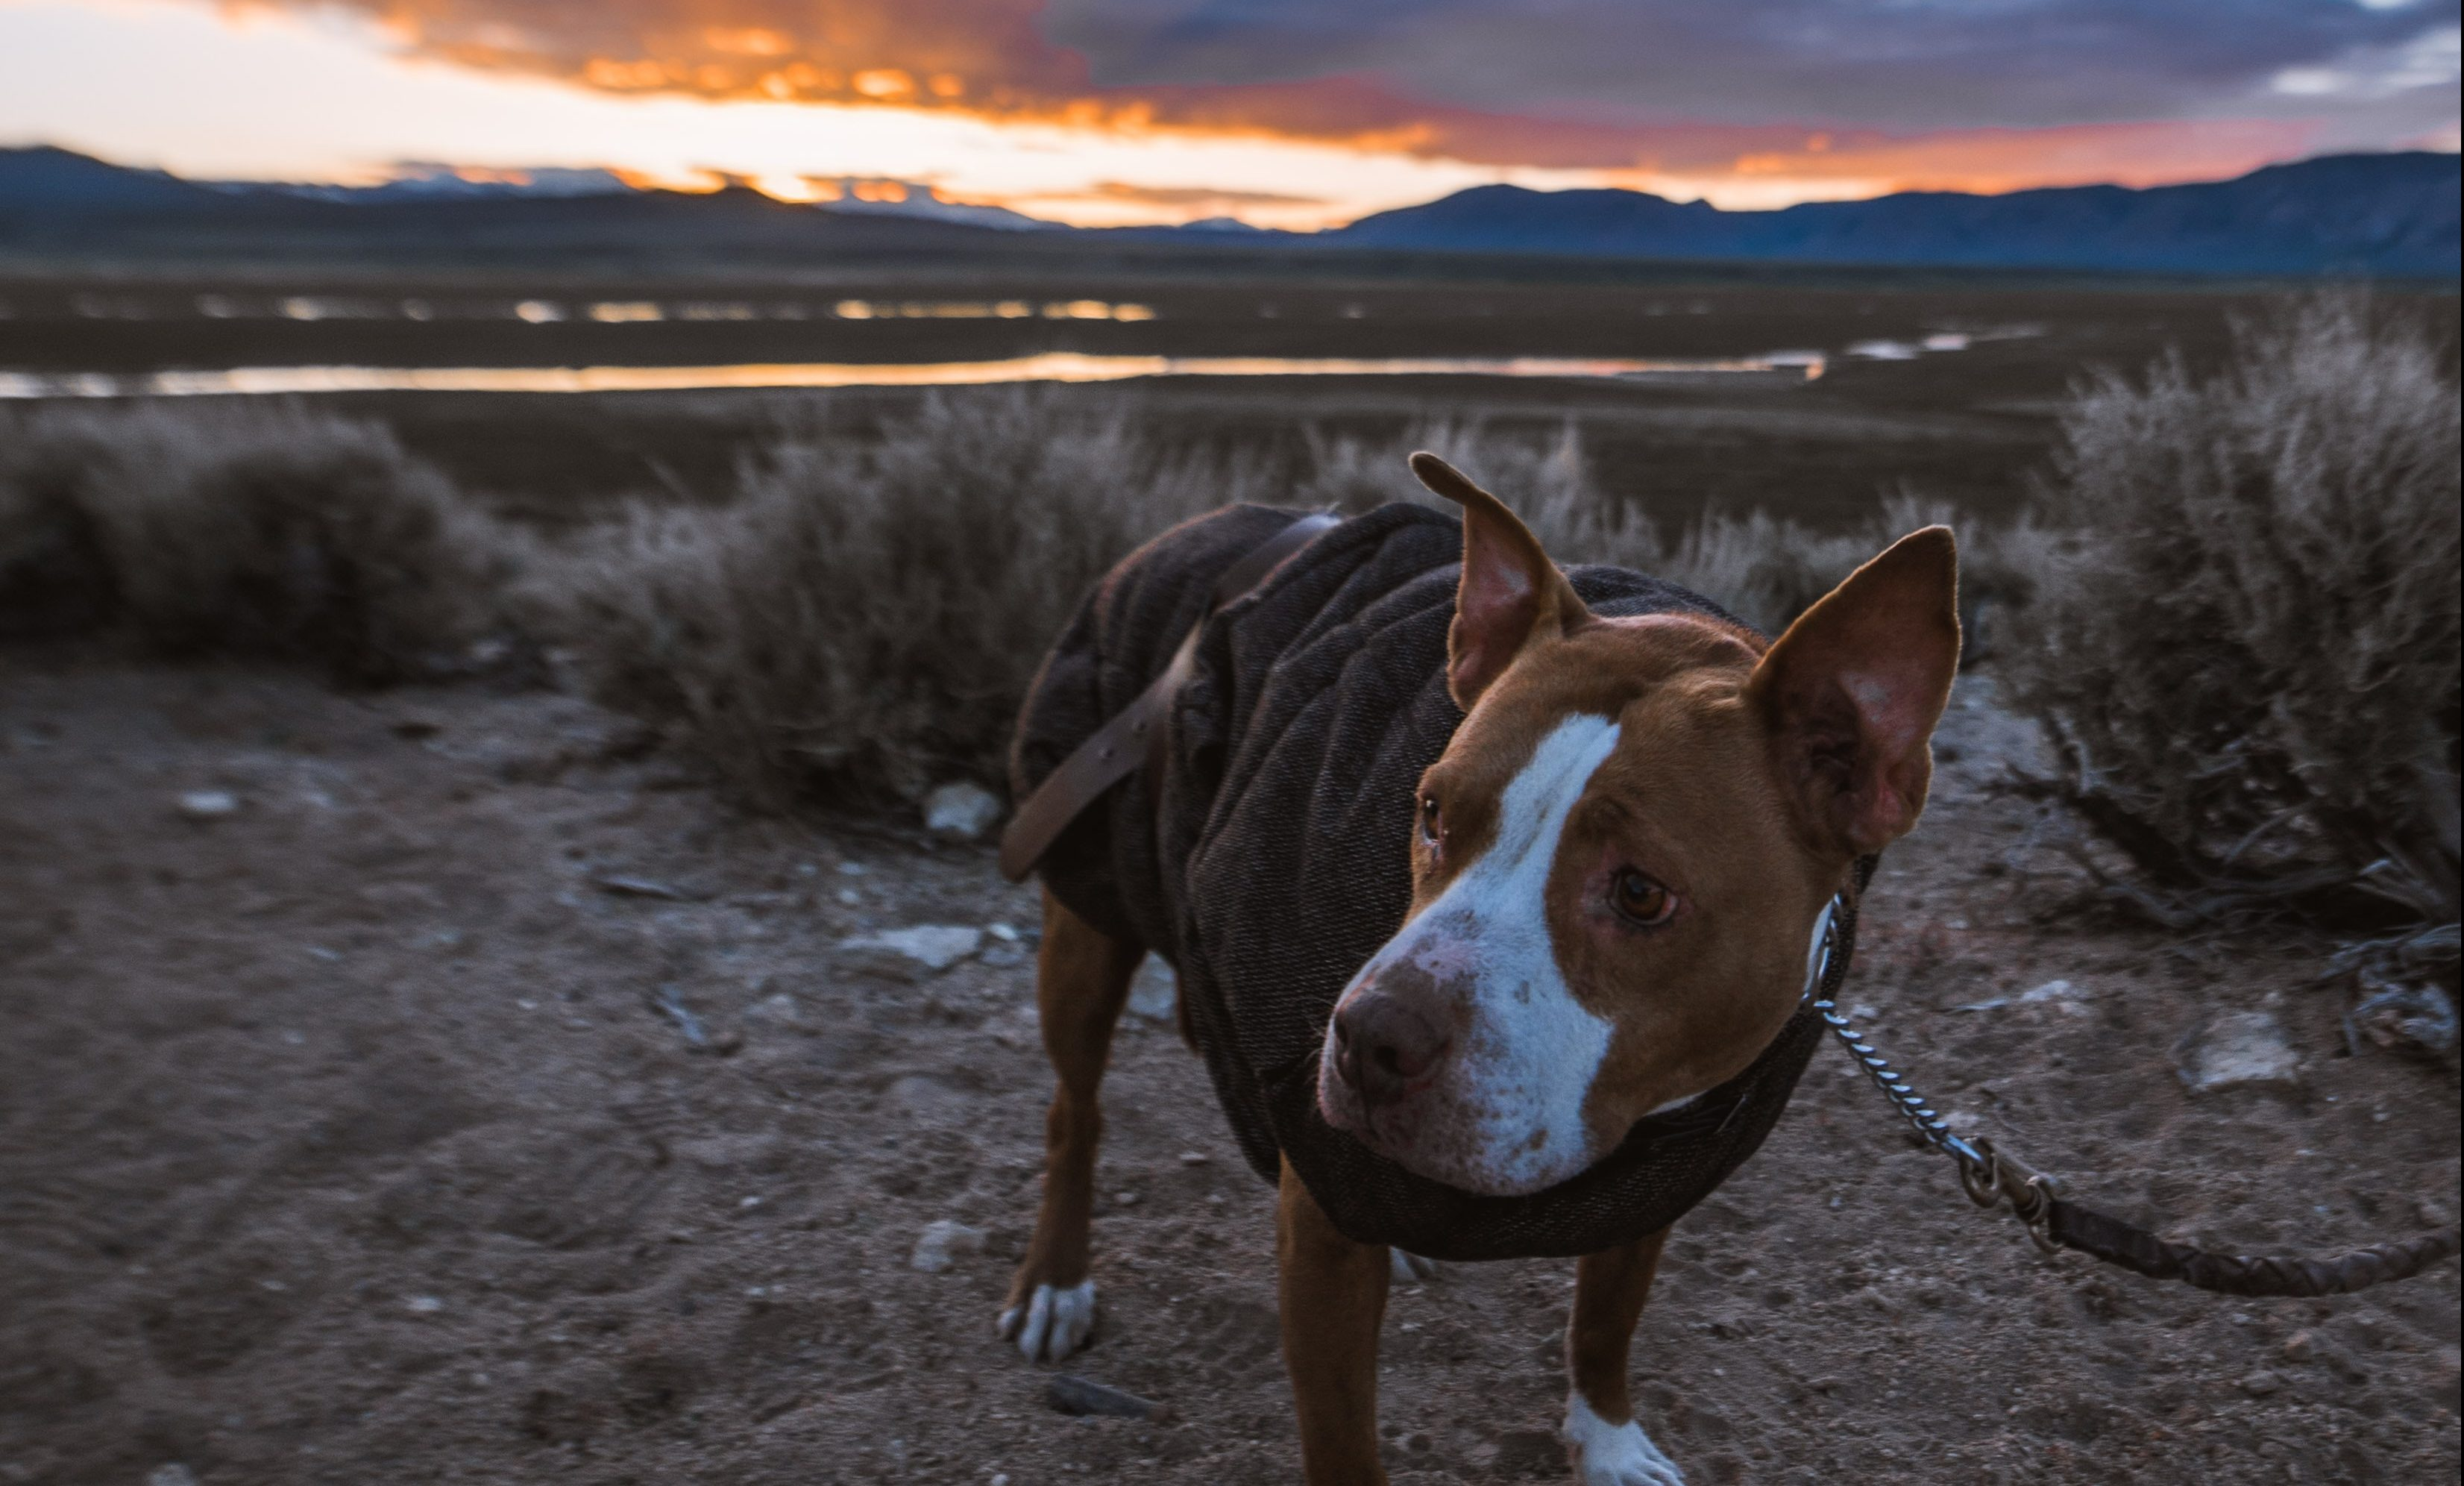 Dog standing on the dirt with sunset in background.